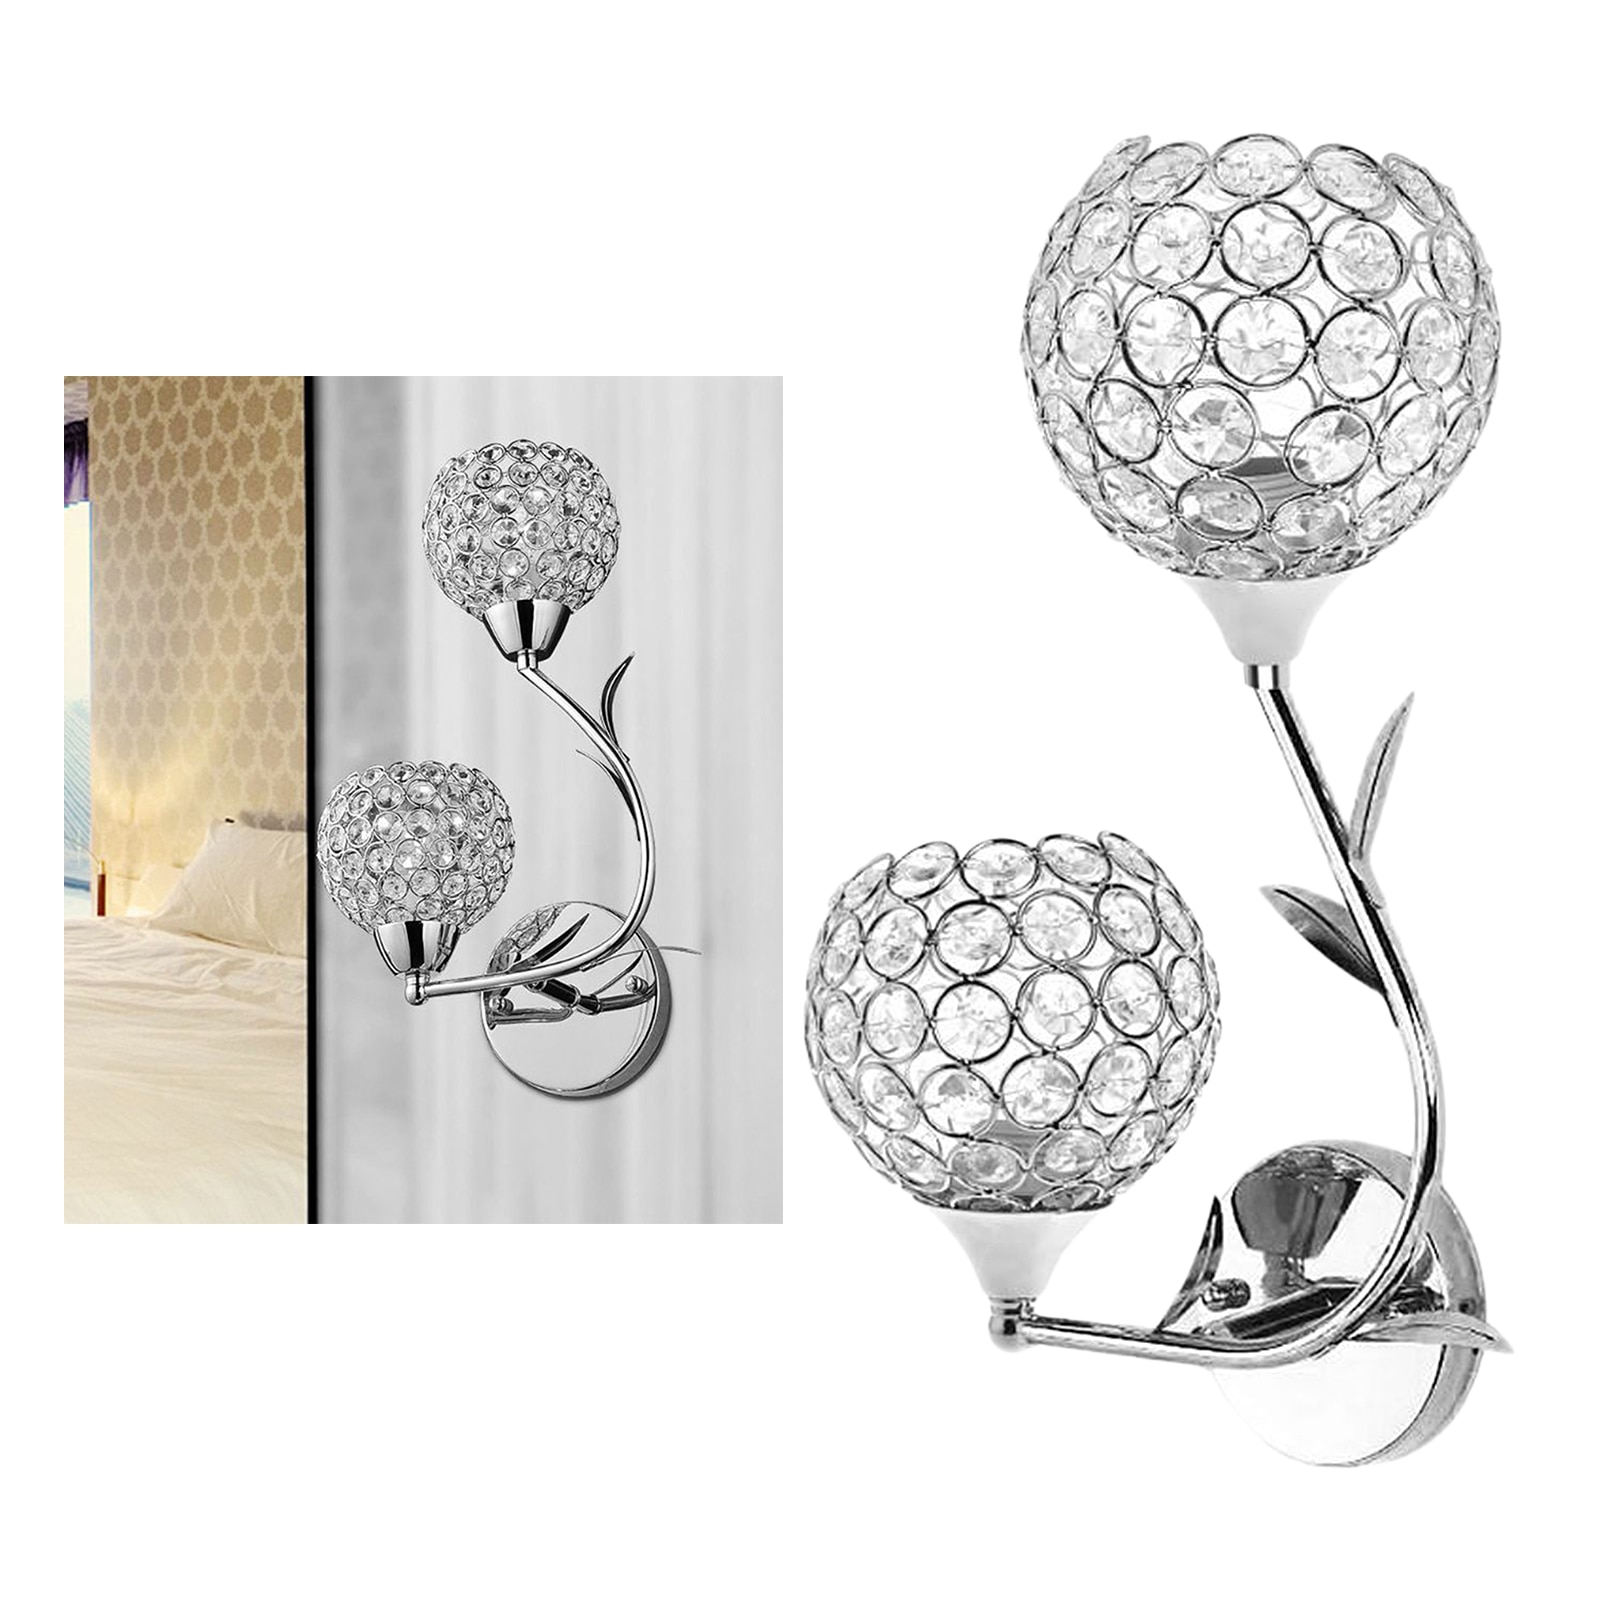 Modern Decorative Crystal Wall Lights Bedside Wall Lamp Sconce for DIY Home Decor with E26/E27 Socket Bulb NOT Included